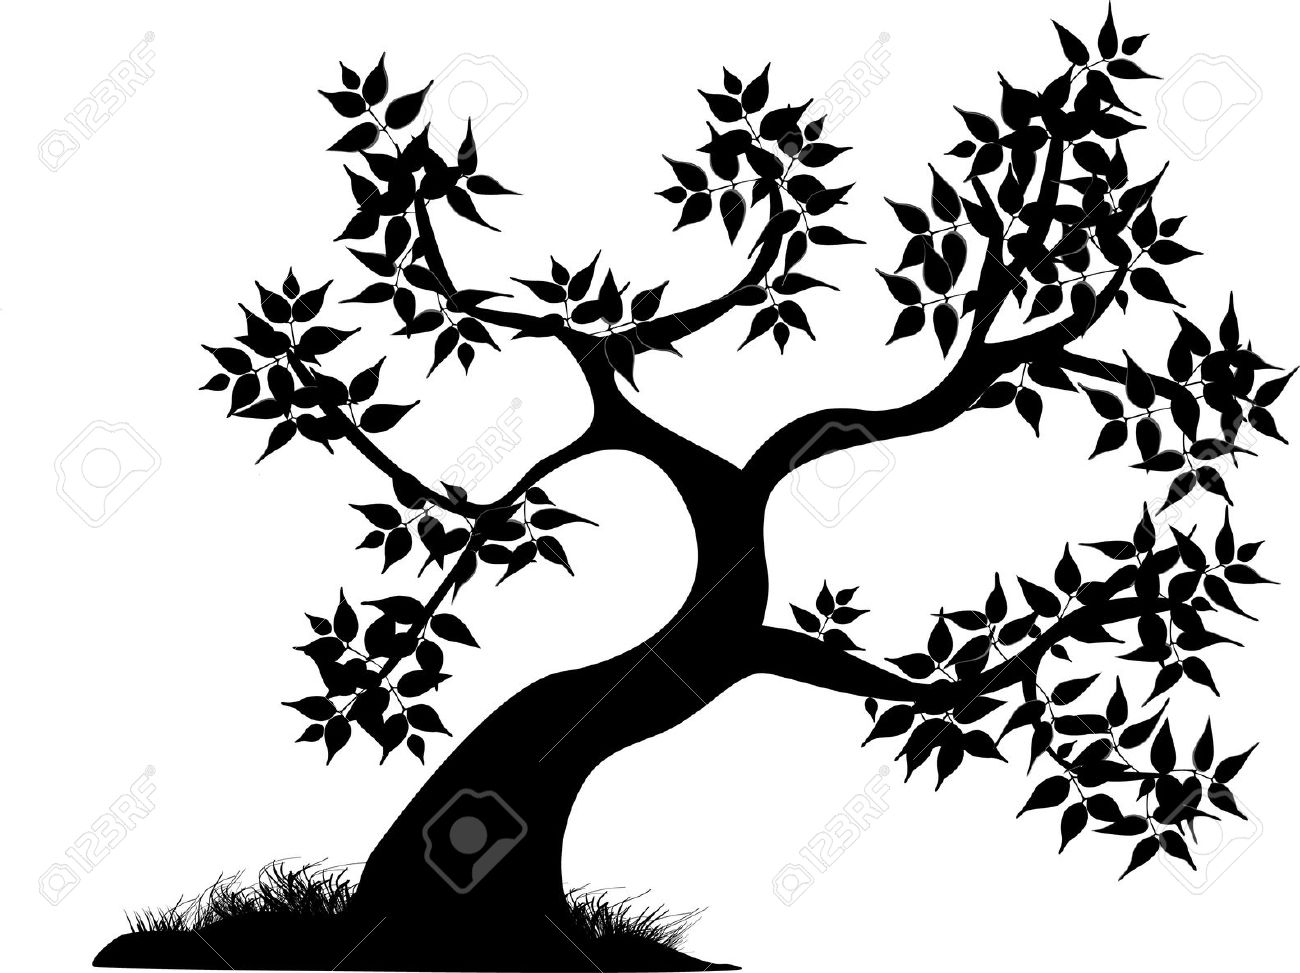 A Single Black Curvey Tree With Leaves Royalty Free Cliparts.